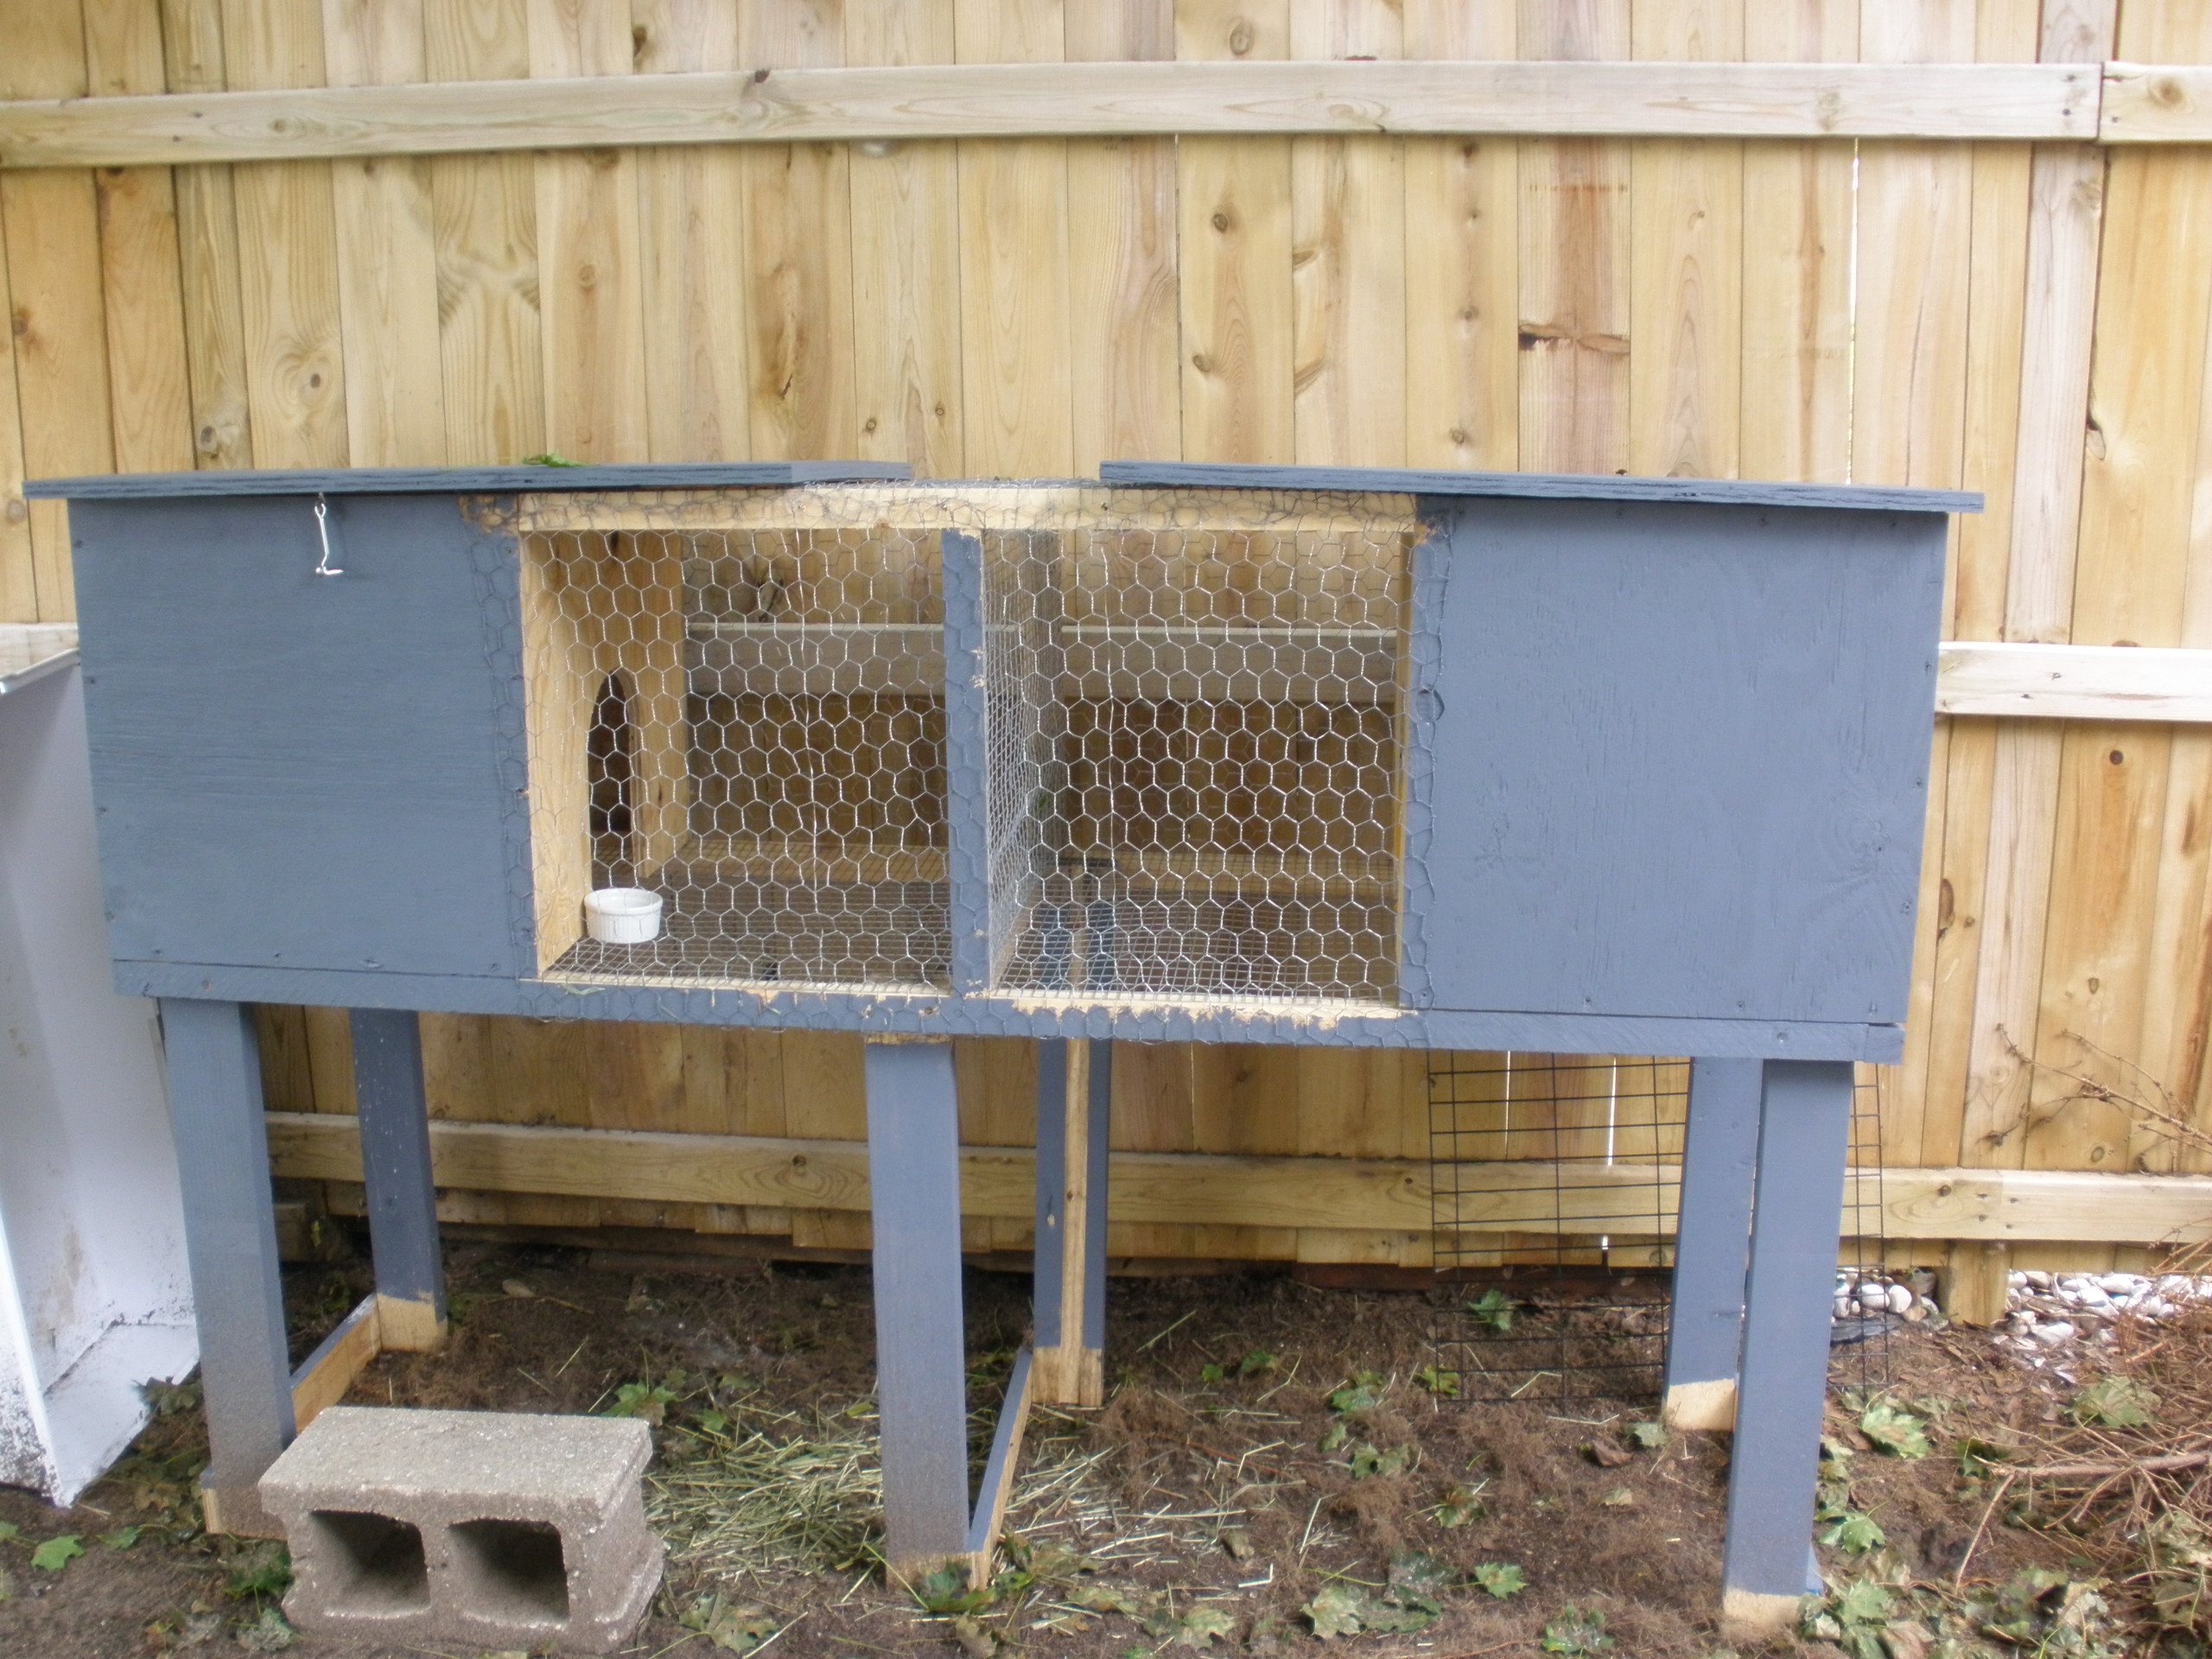 Diy Cage For Rabbit Building A Rabbit Hutch Notes From A Country Girl Living